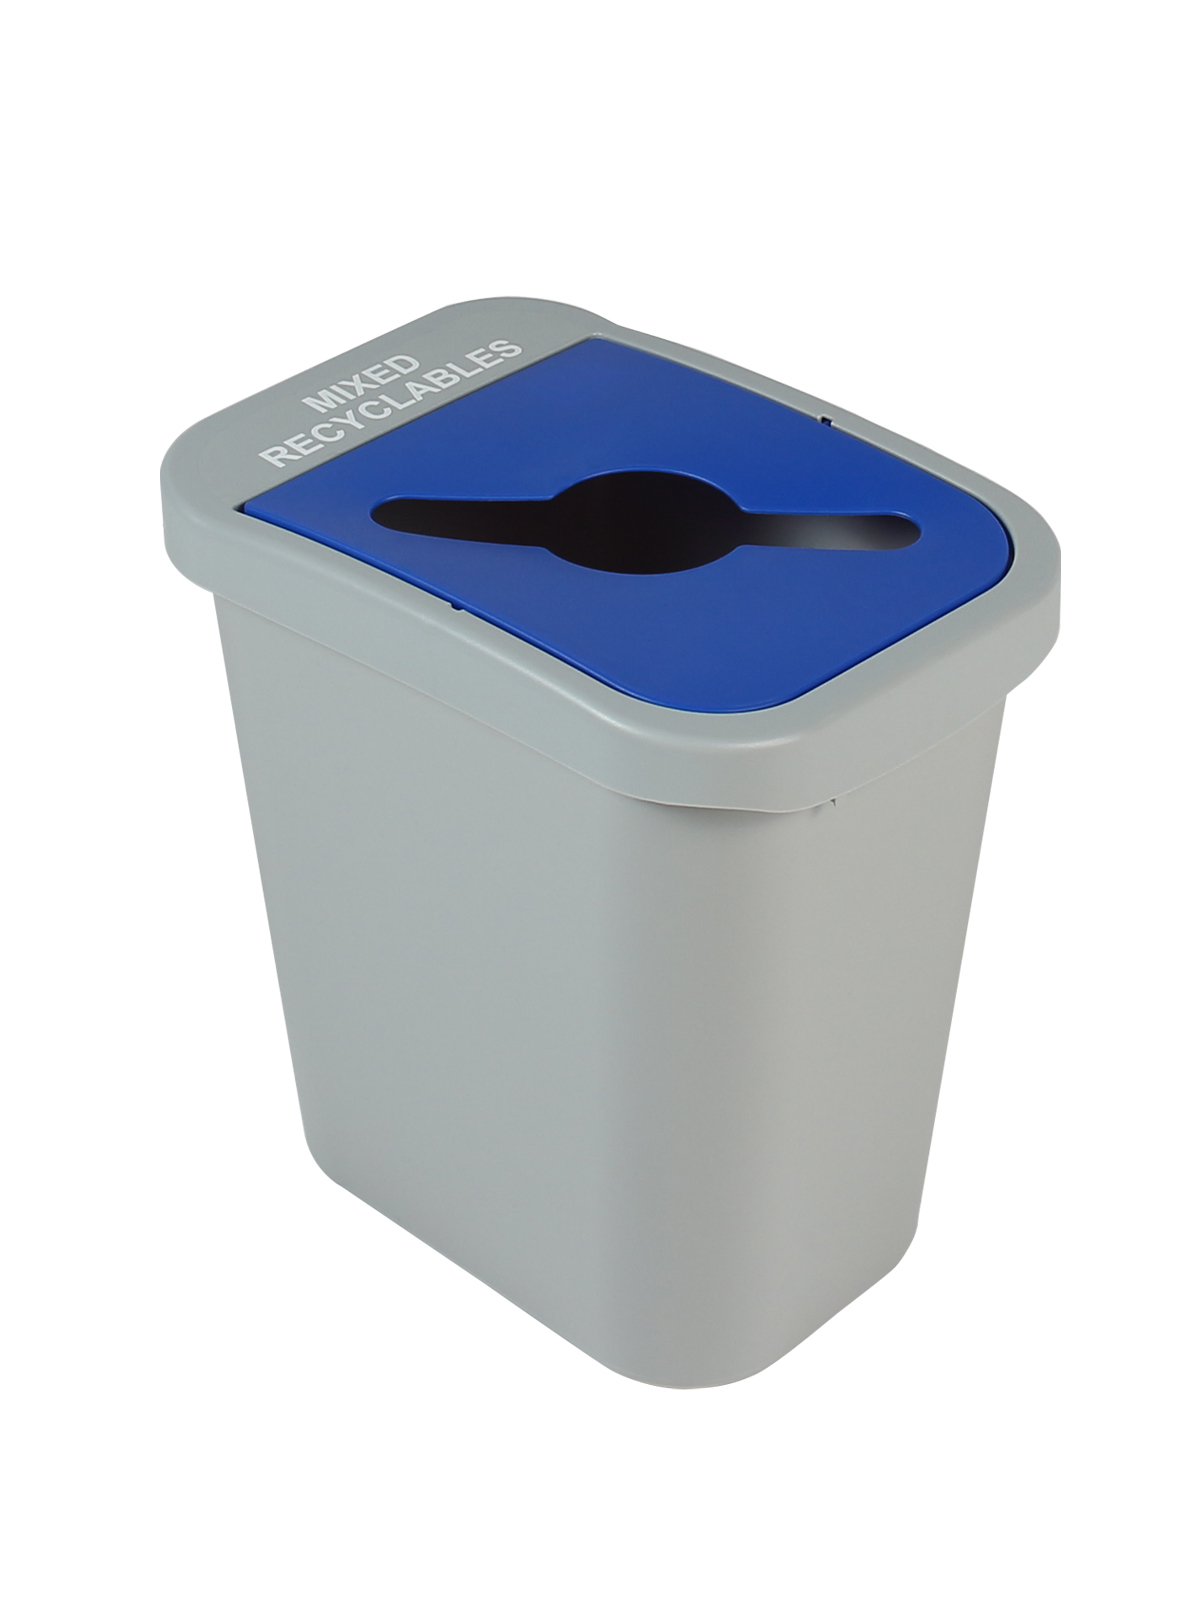 BILLI BOX - Single - 7 G - Mixed Recyclables - Mixed - Grey-Blue title=